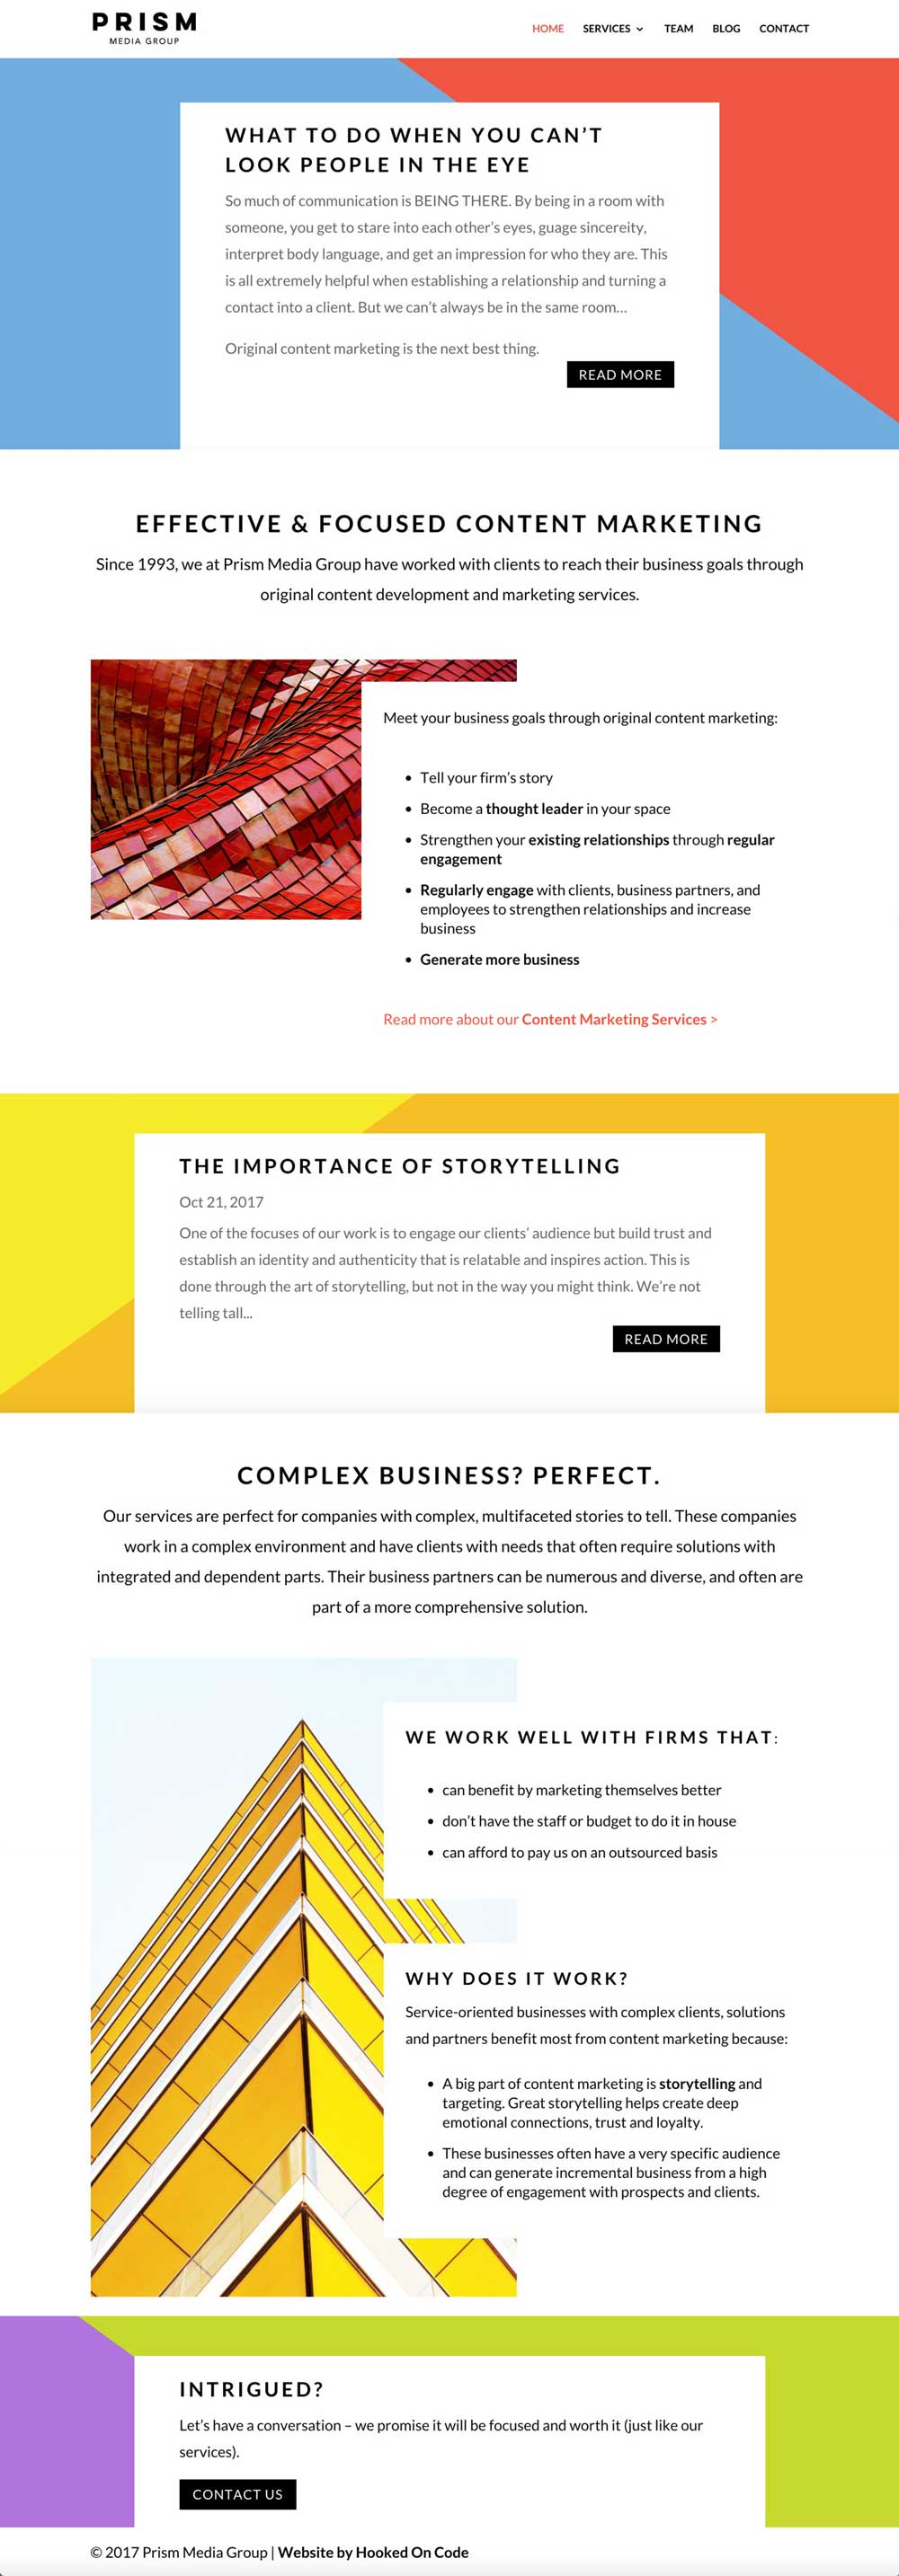 CSL Dallas Home Page After website redesign